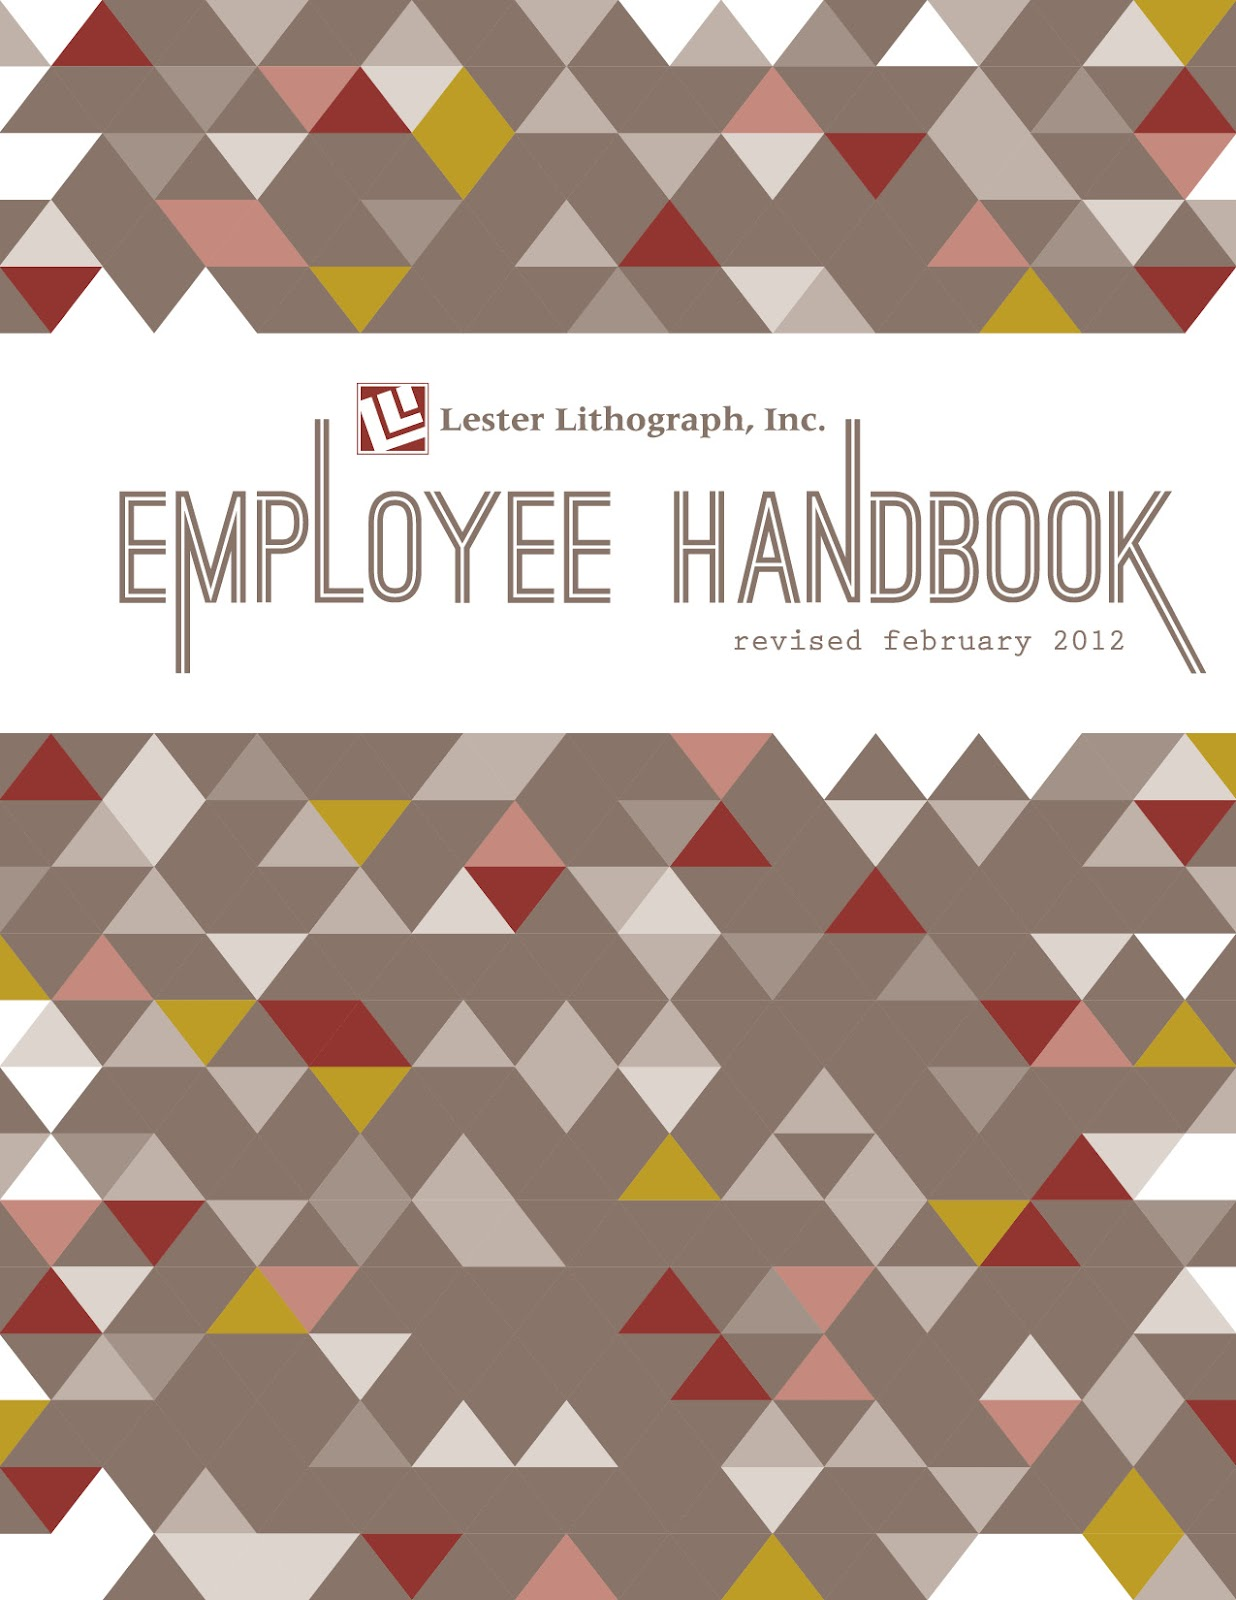 Heather l myers graphic design employee handbook cover for Employee handbook cover design template